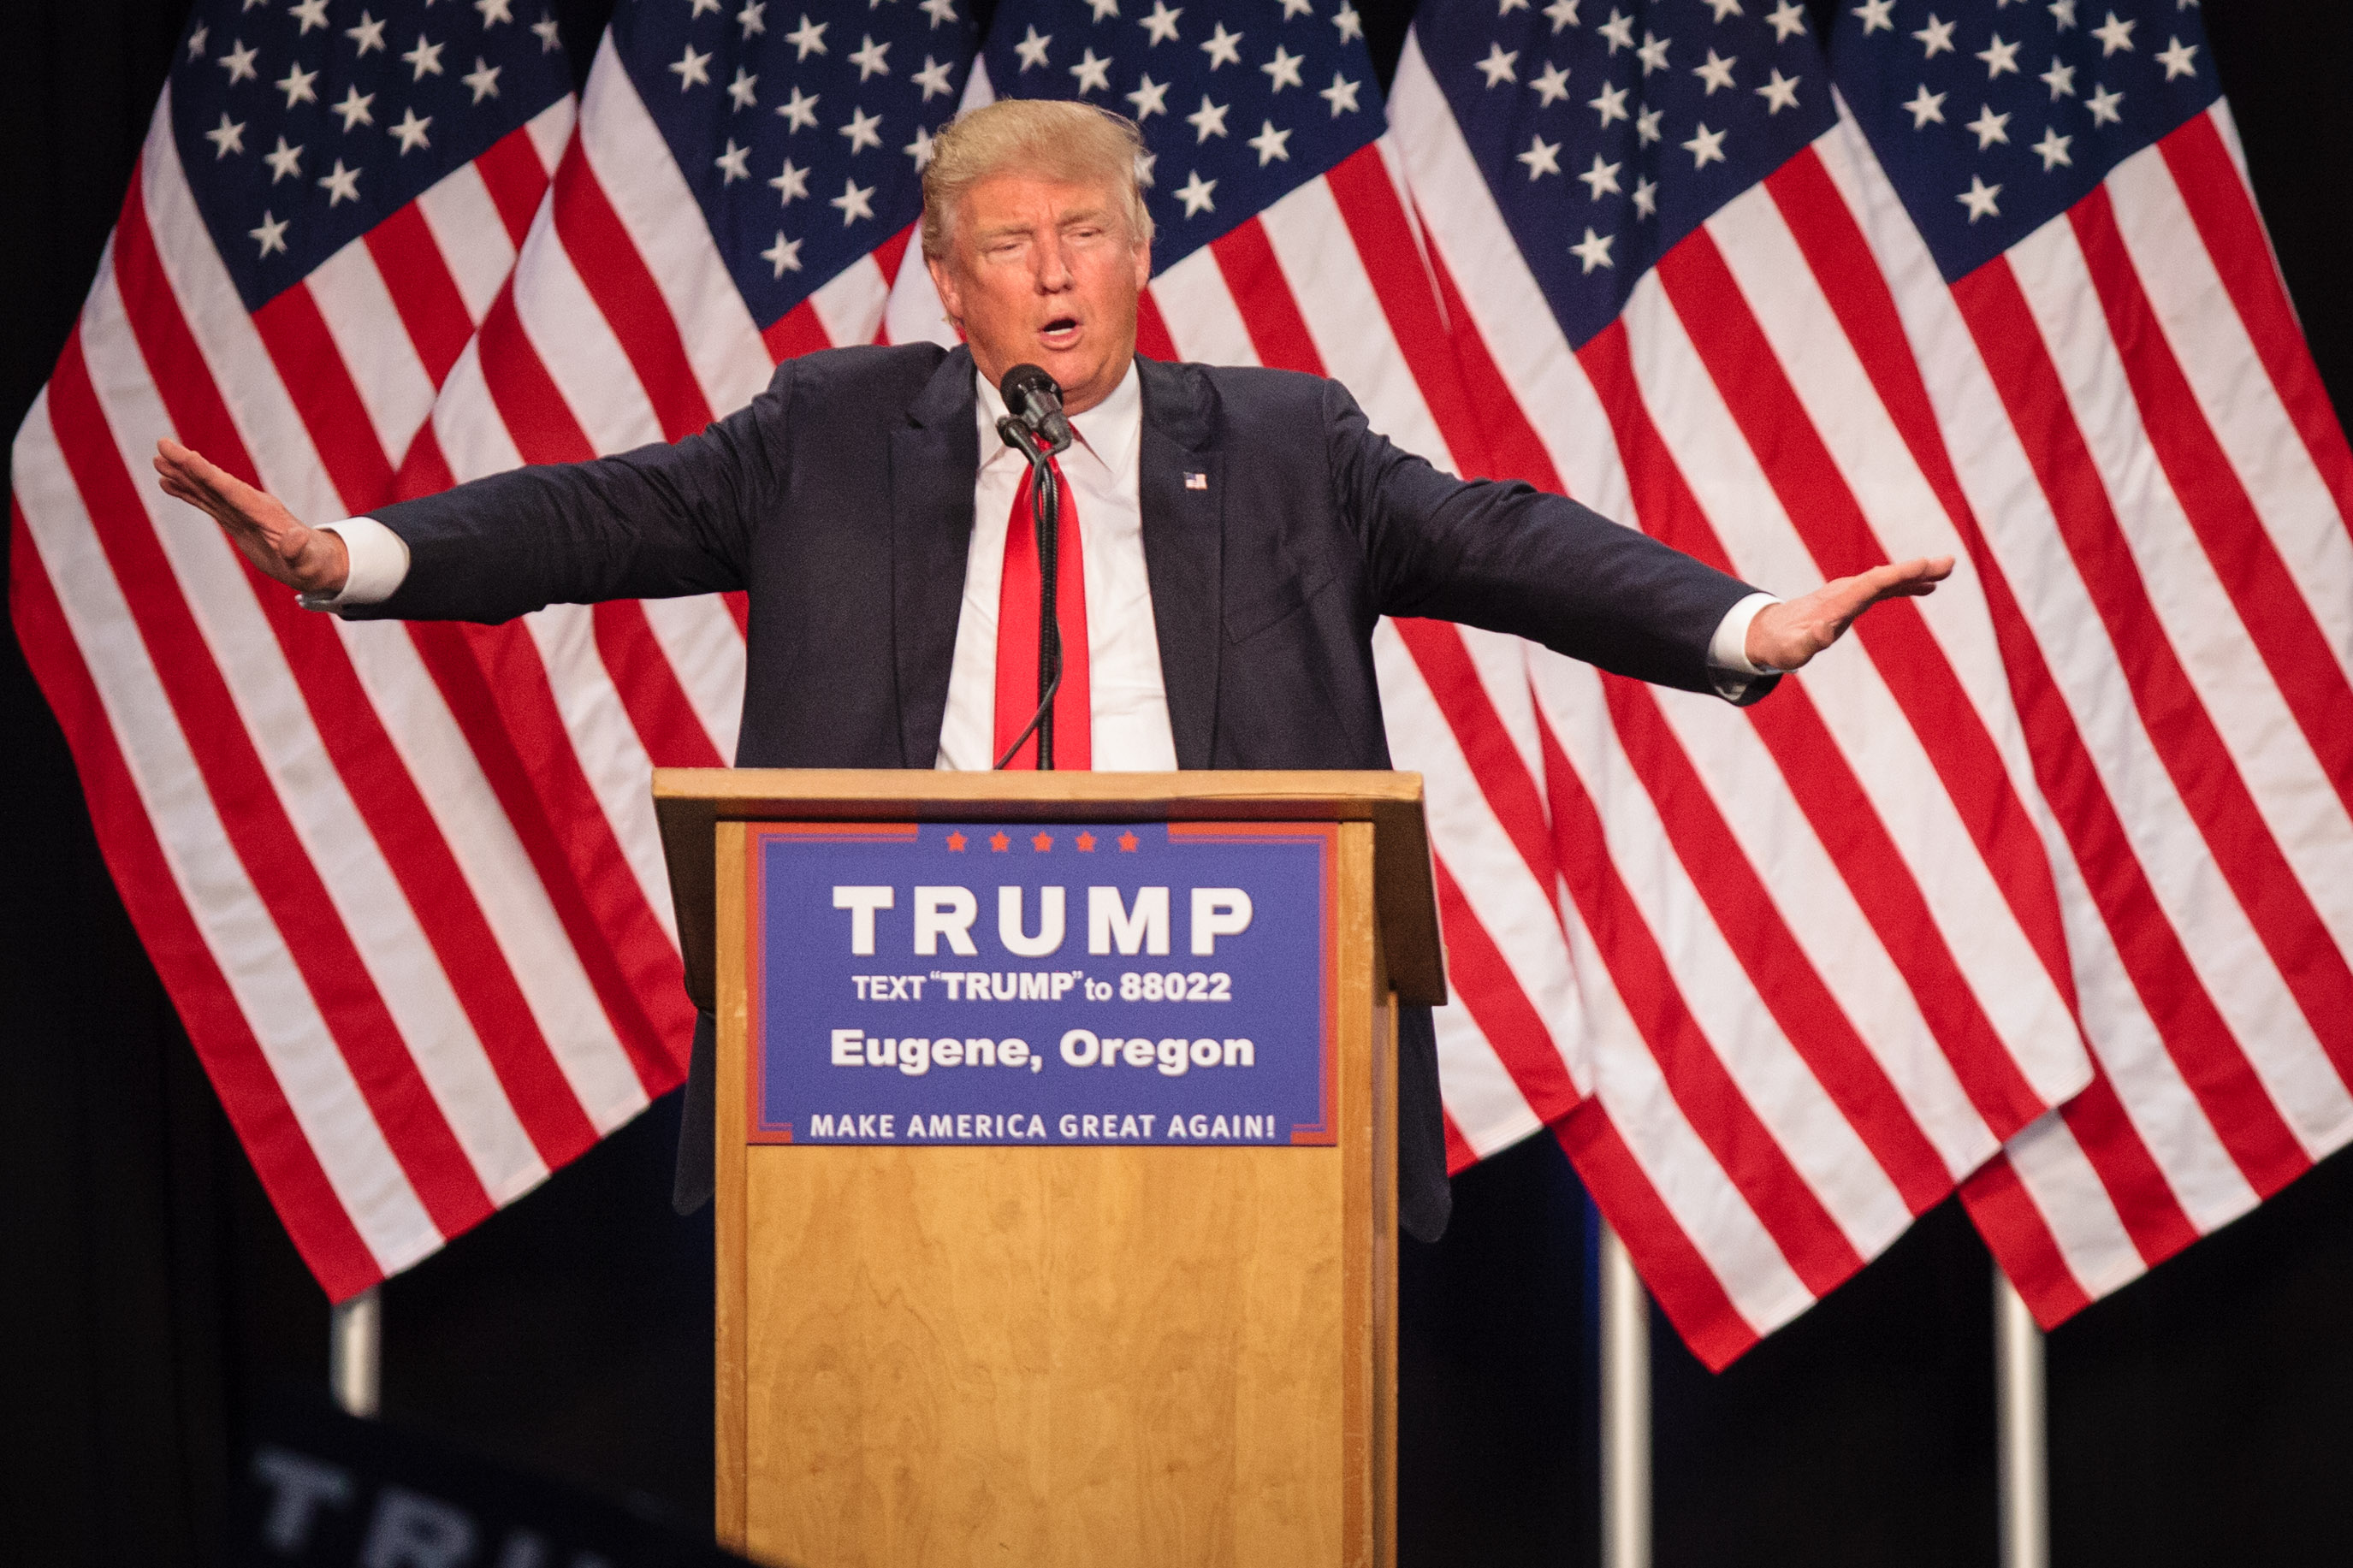 US Republican presidential candidate Donald Trump addresses the audience in Eugene, Oregon on May 6, 2016